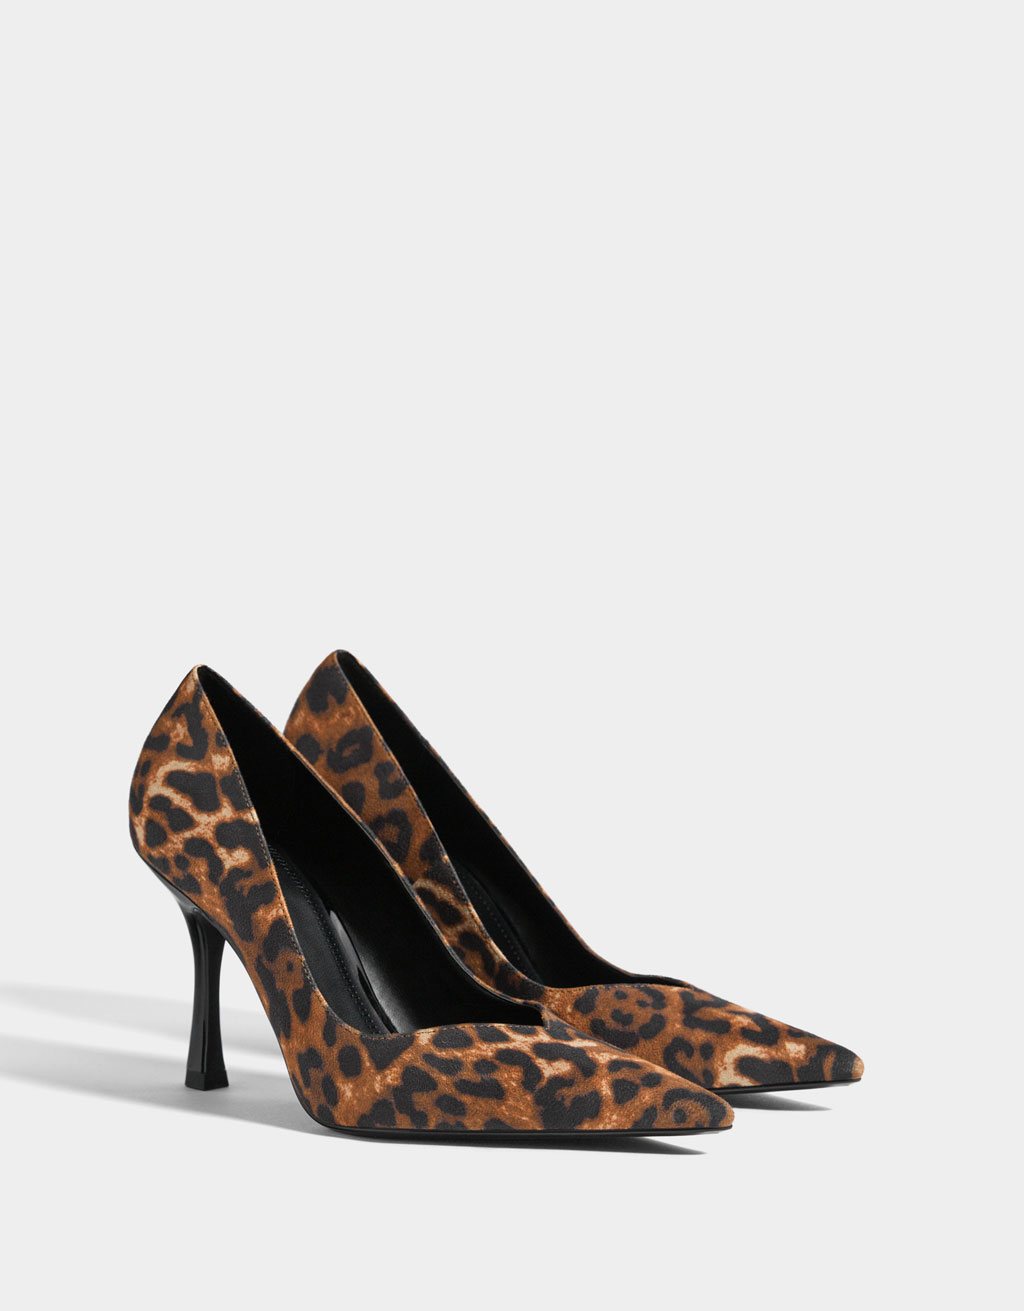 Escarpins talon aiguille animal print